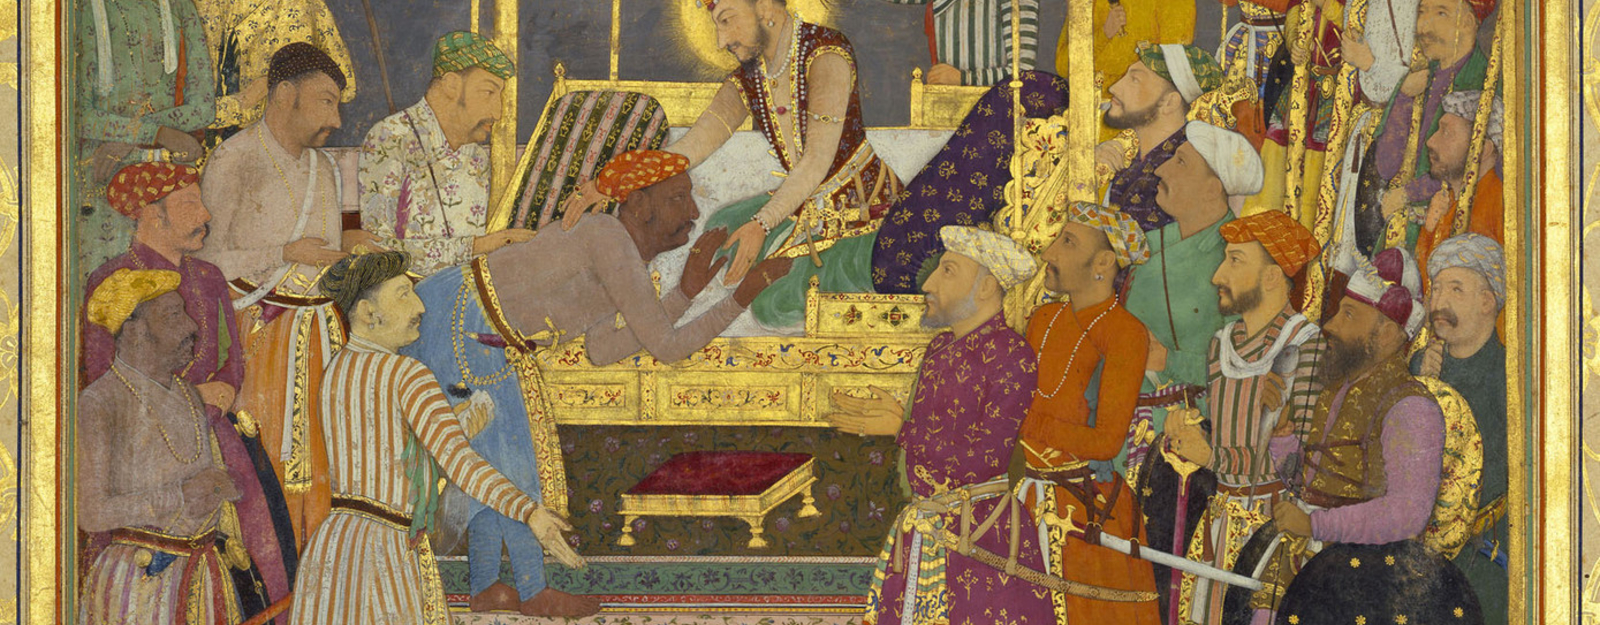 f.46b: submission of Rana Amar Singh (plate 6) 